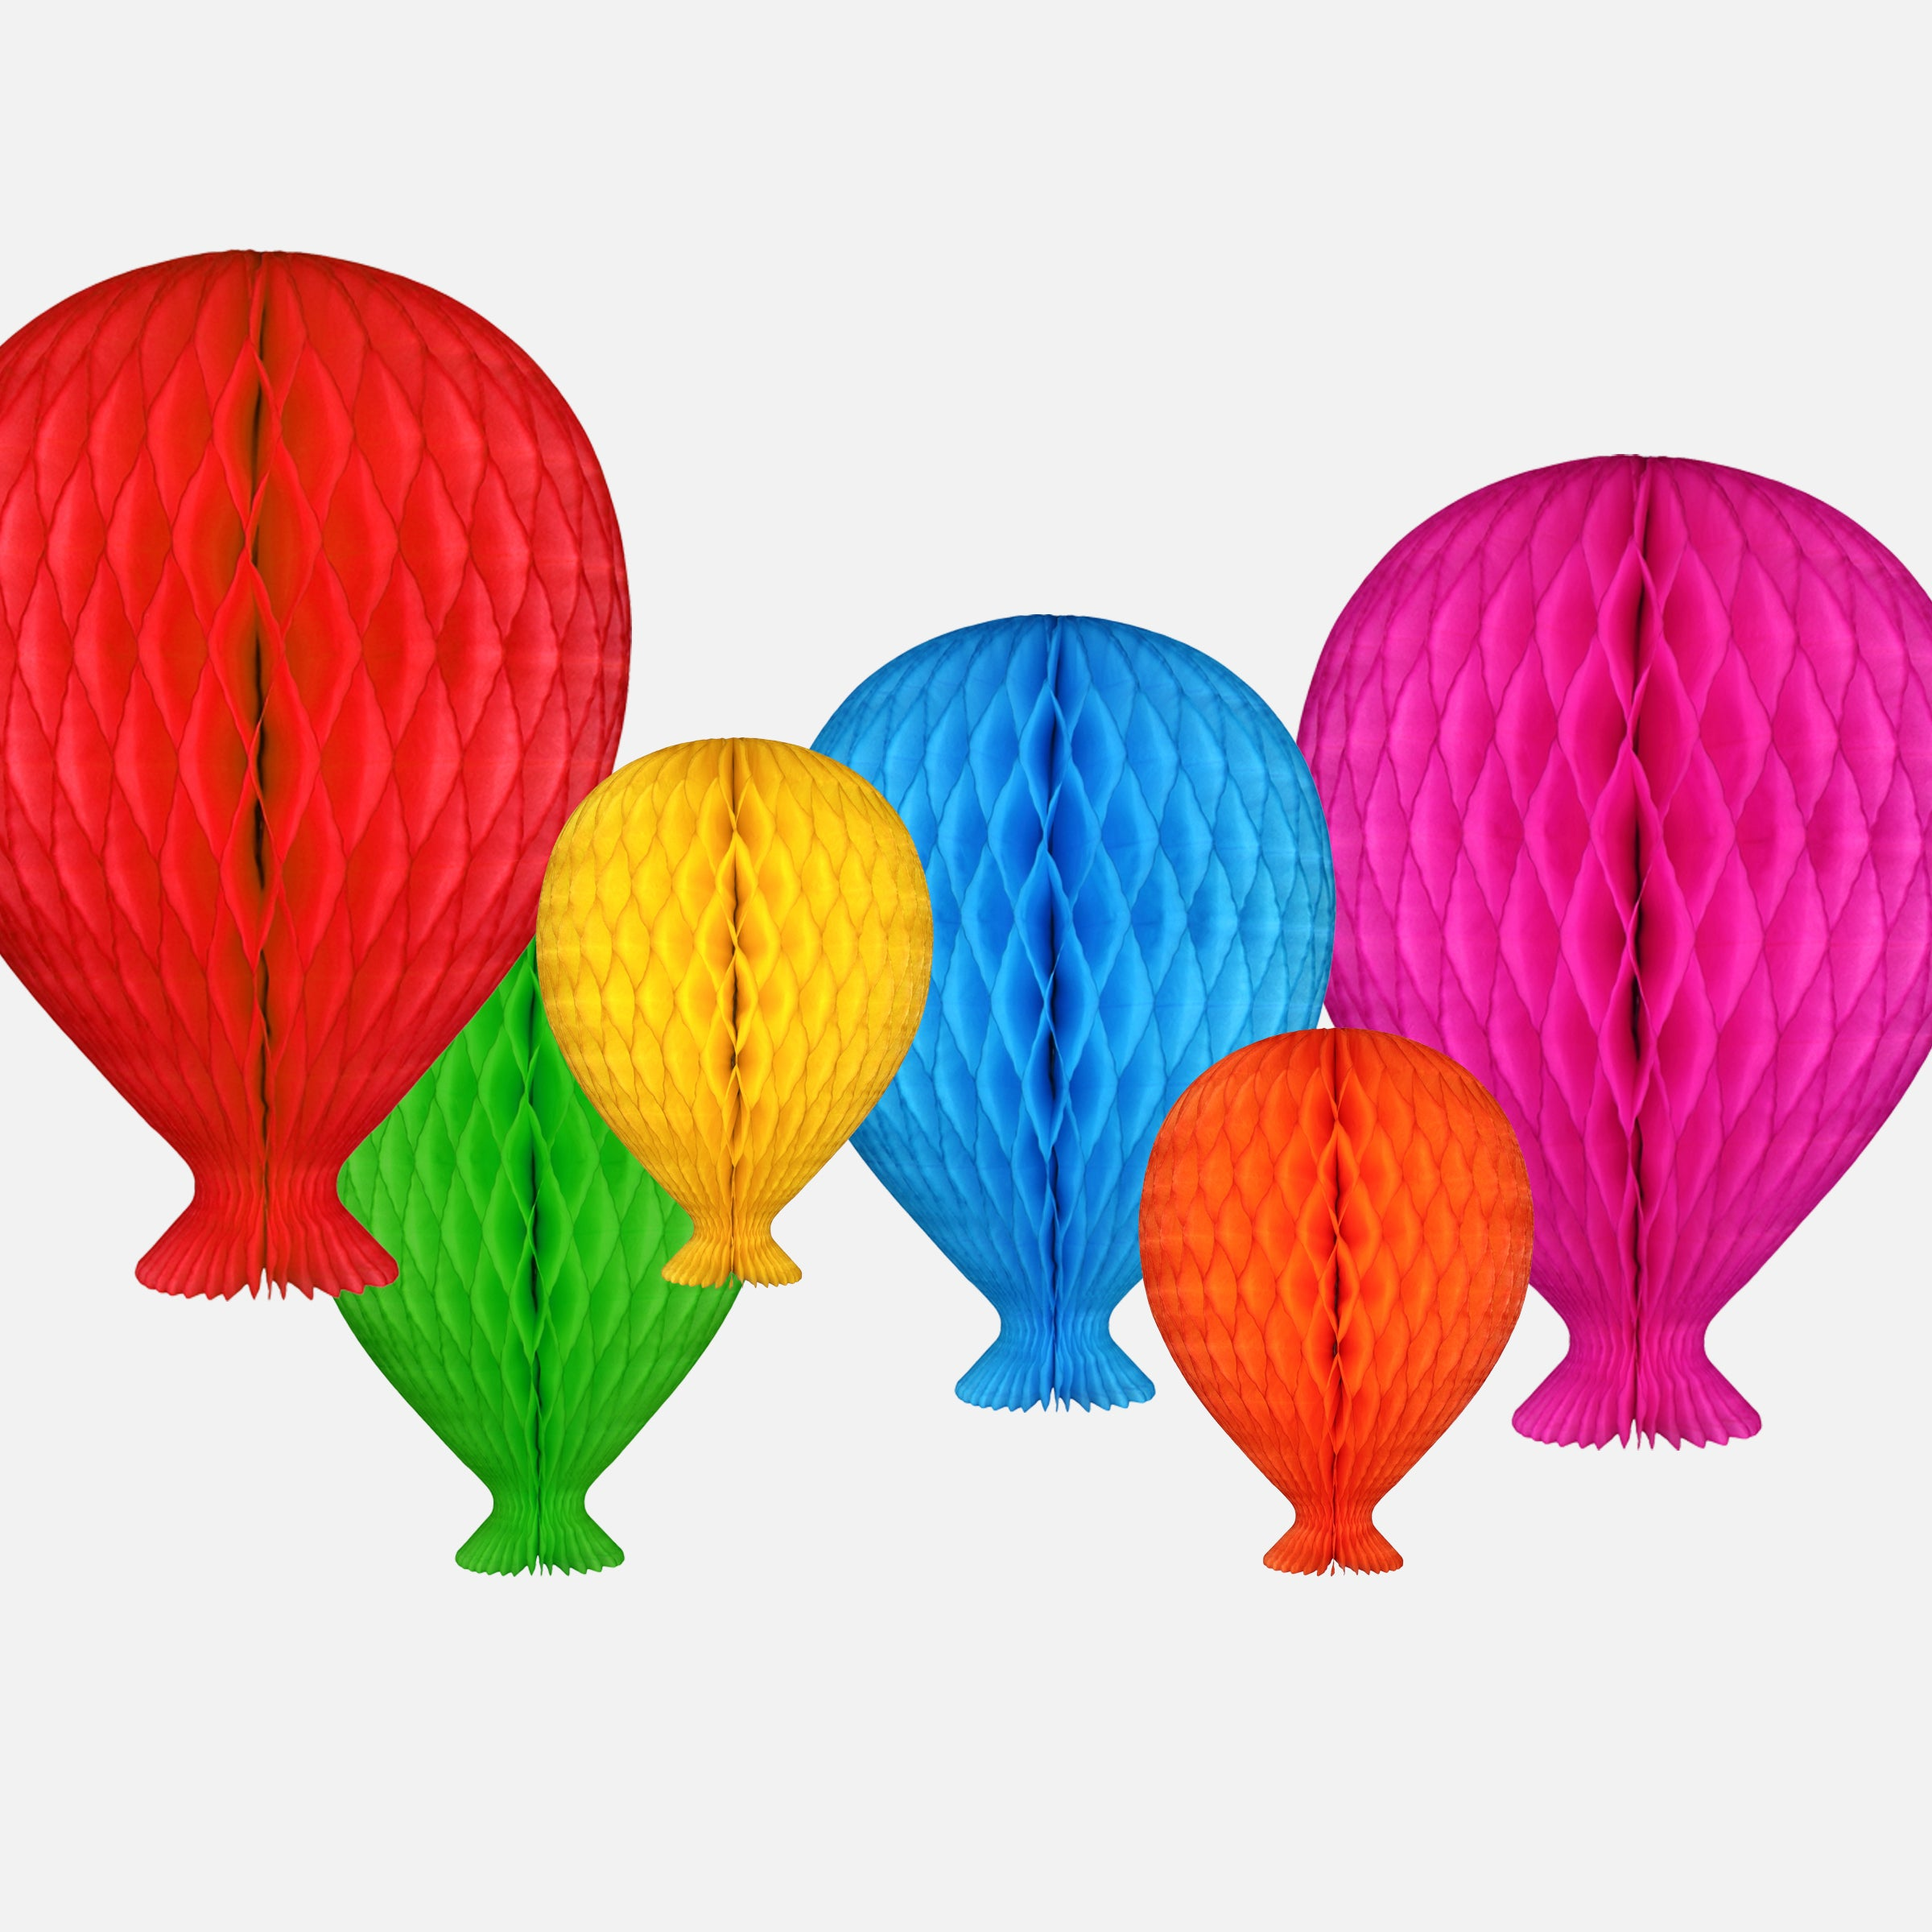 Honeycomb Balloon, Bright Yellow